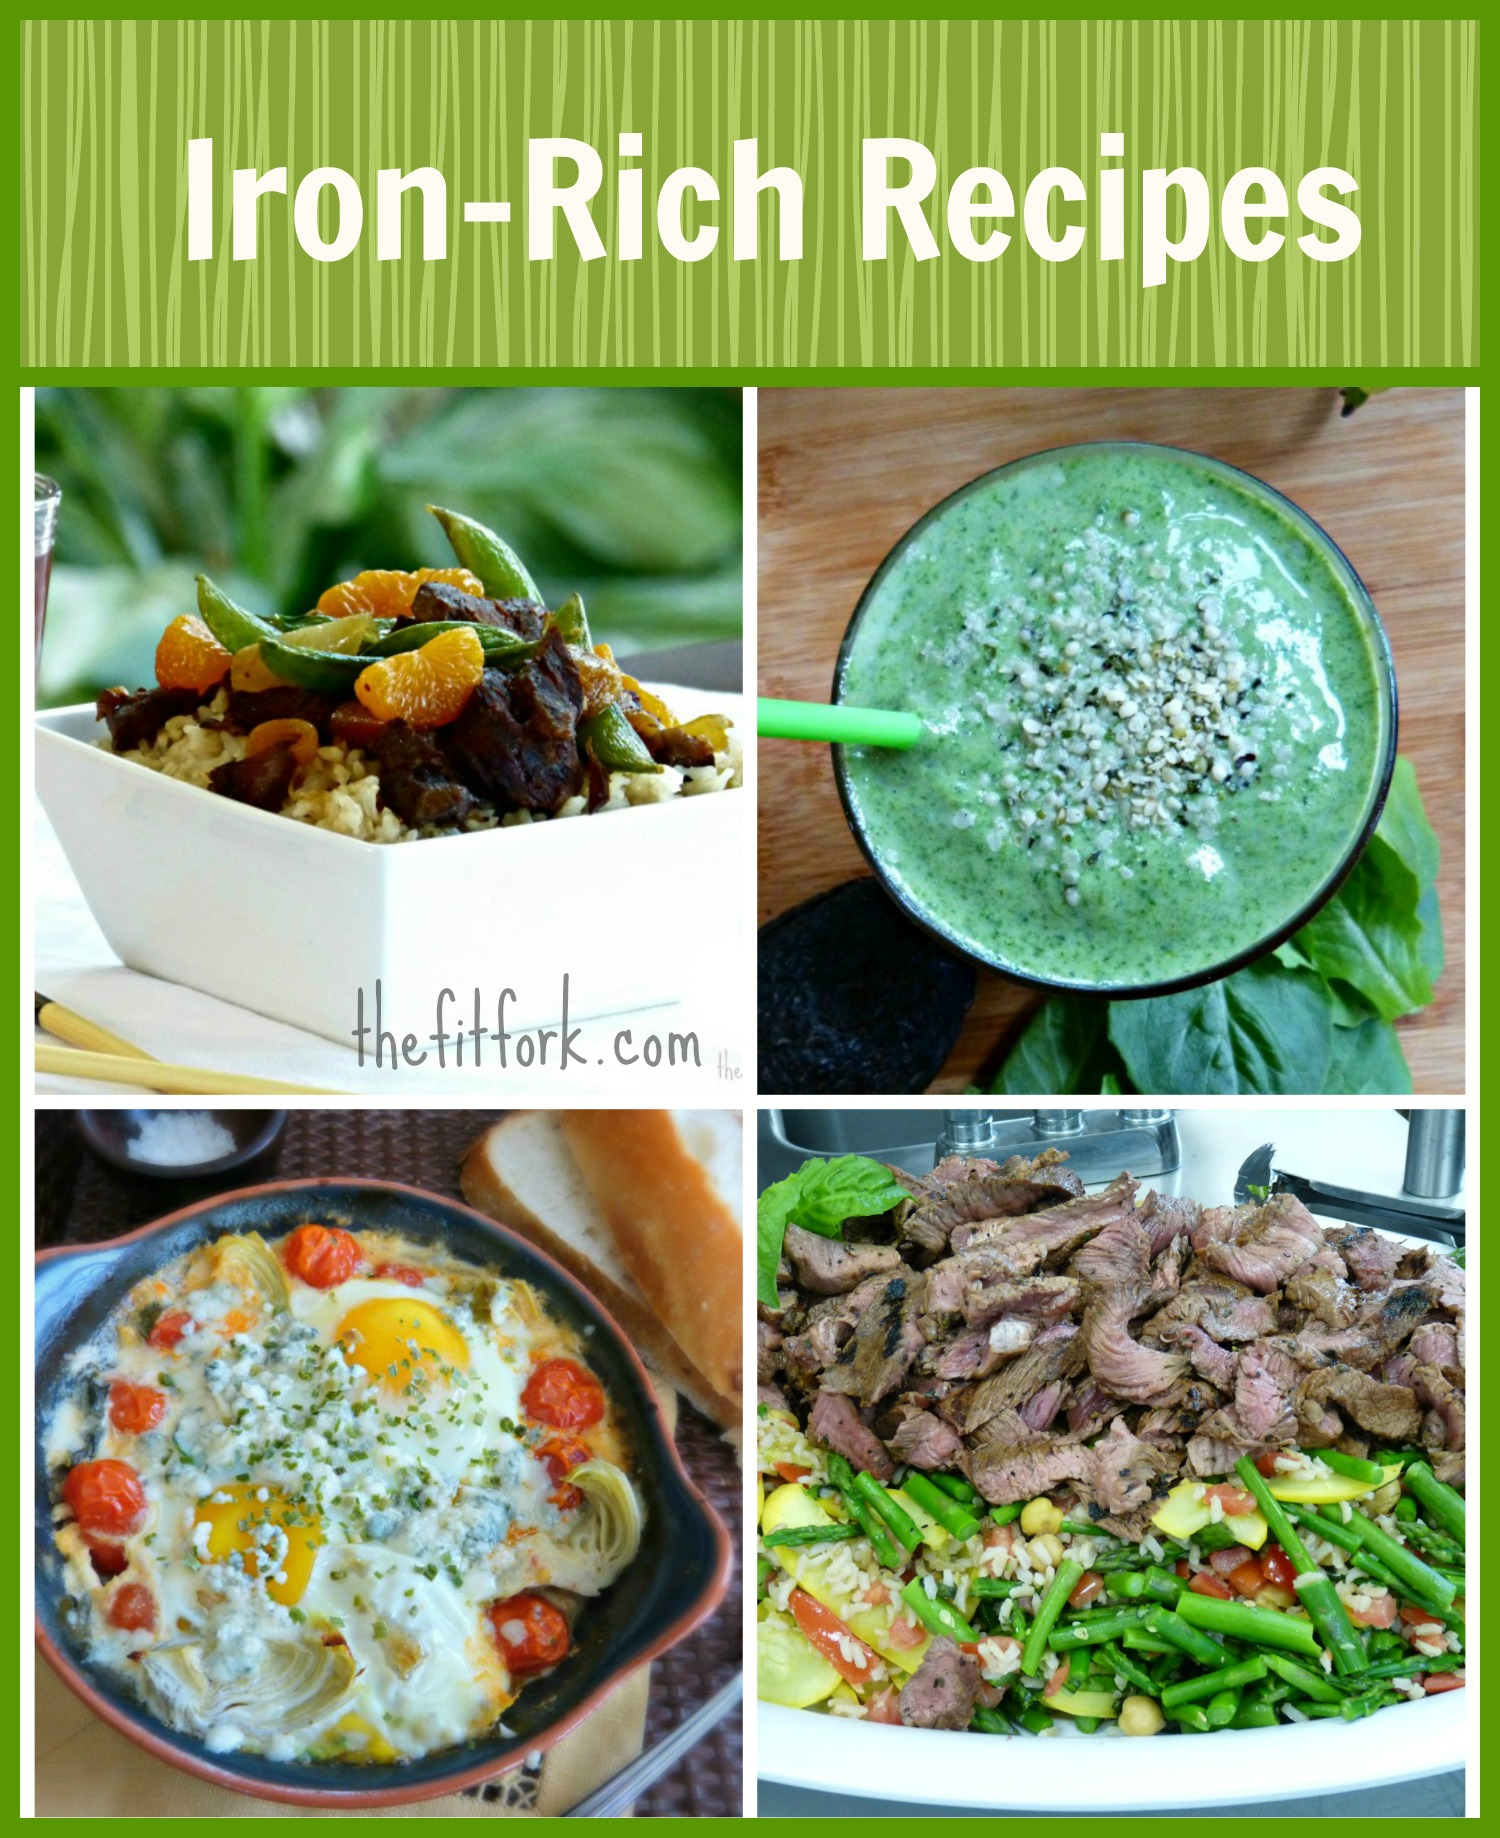 foods high in iron for anemia rich recipes thefitfork